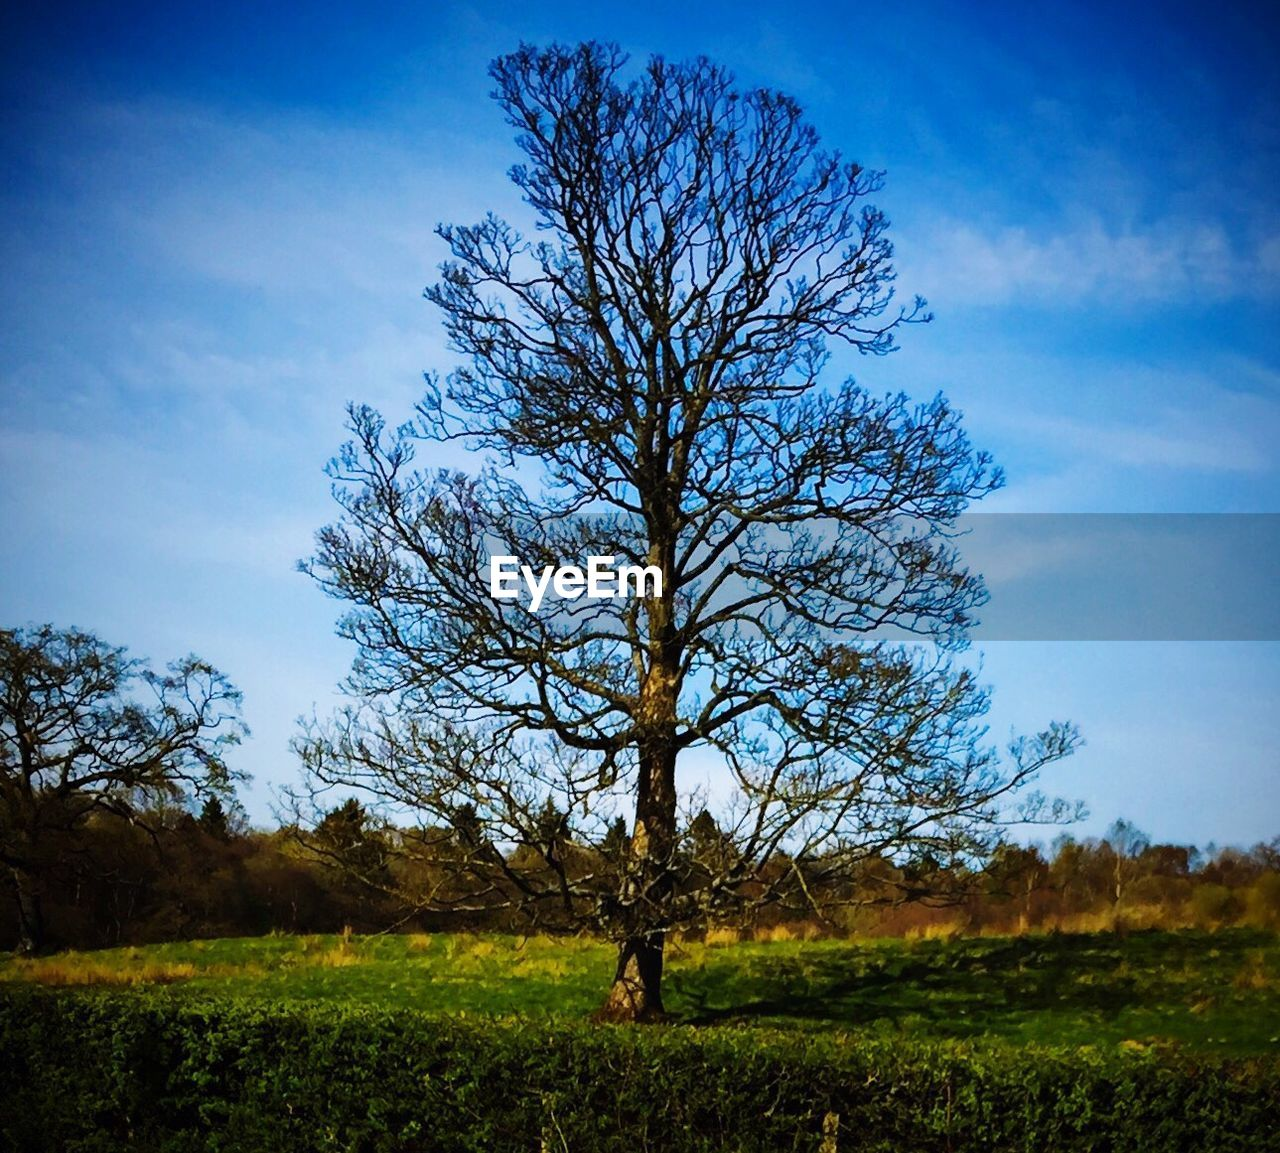 tree, landscape, solitude, lone, tranquility, field, sky, nature, bare tree, beauty in nature, blue, branch, outdoors, day, one person, people